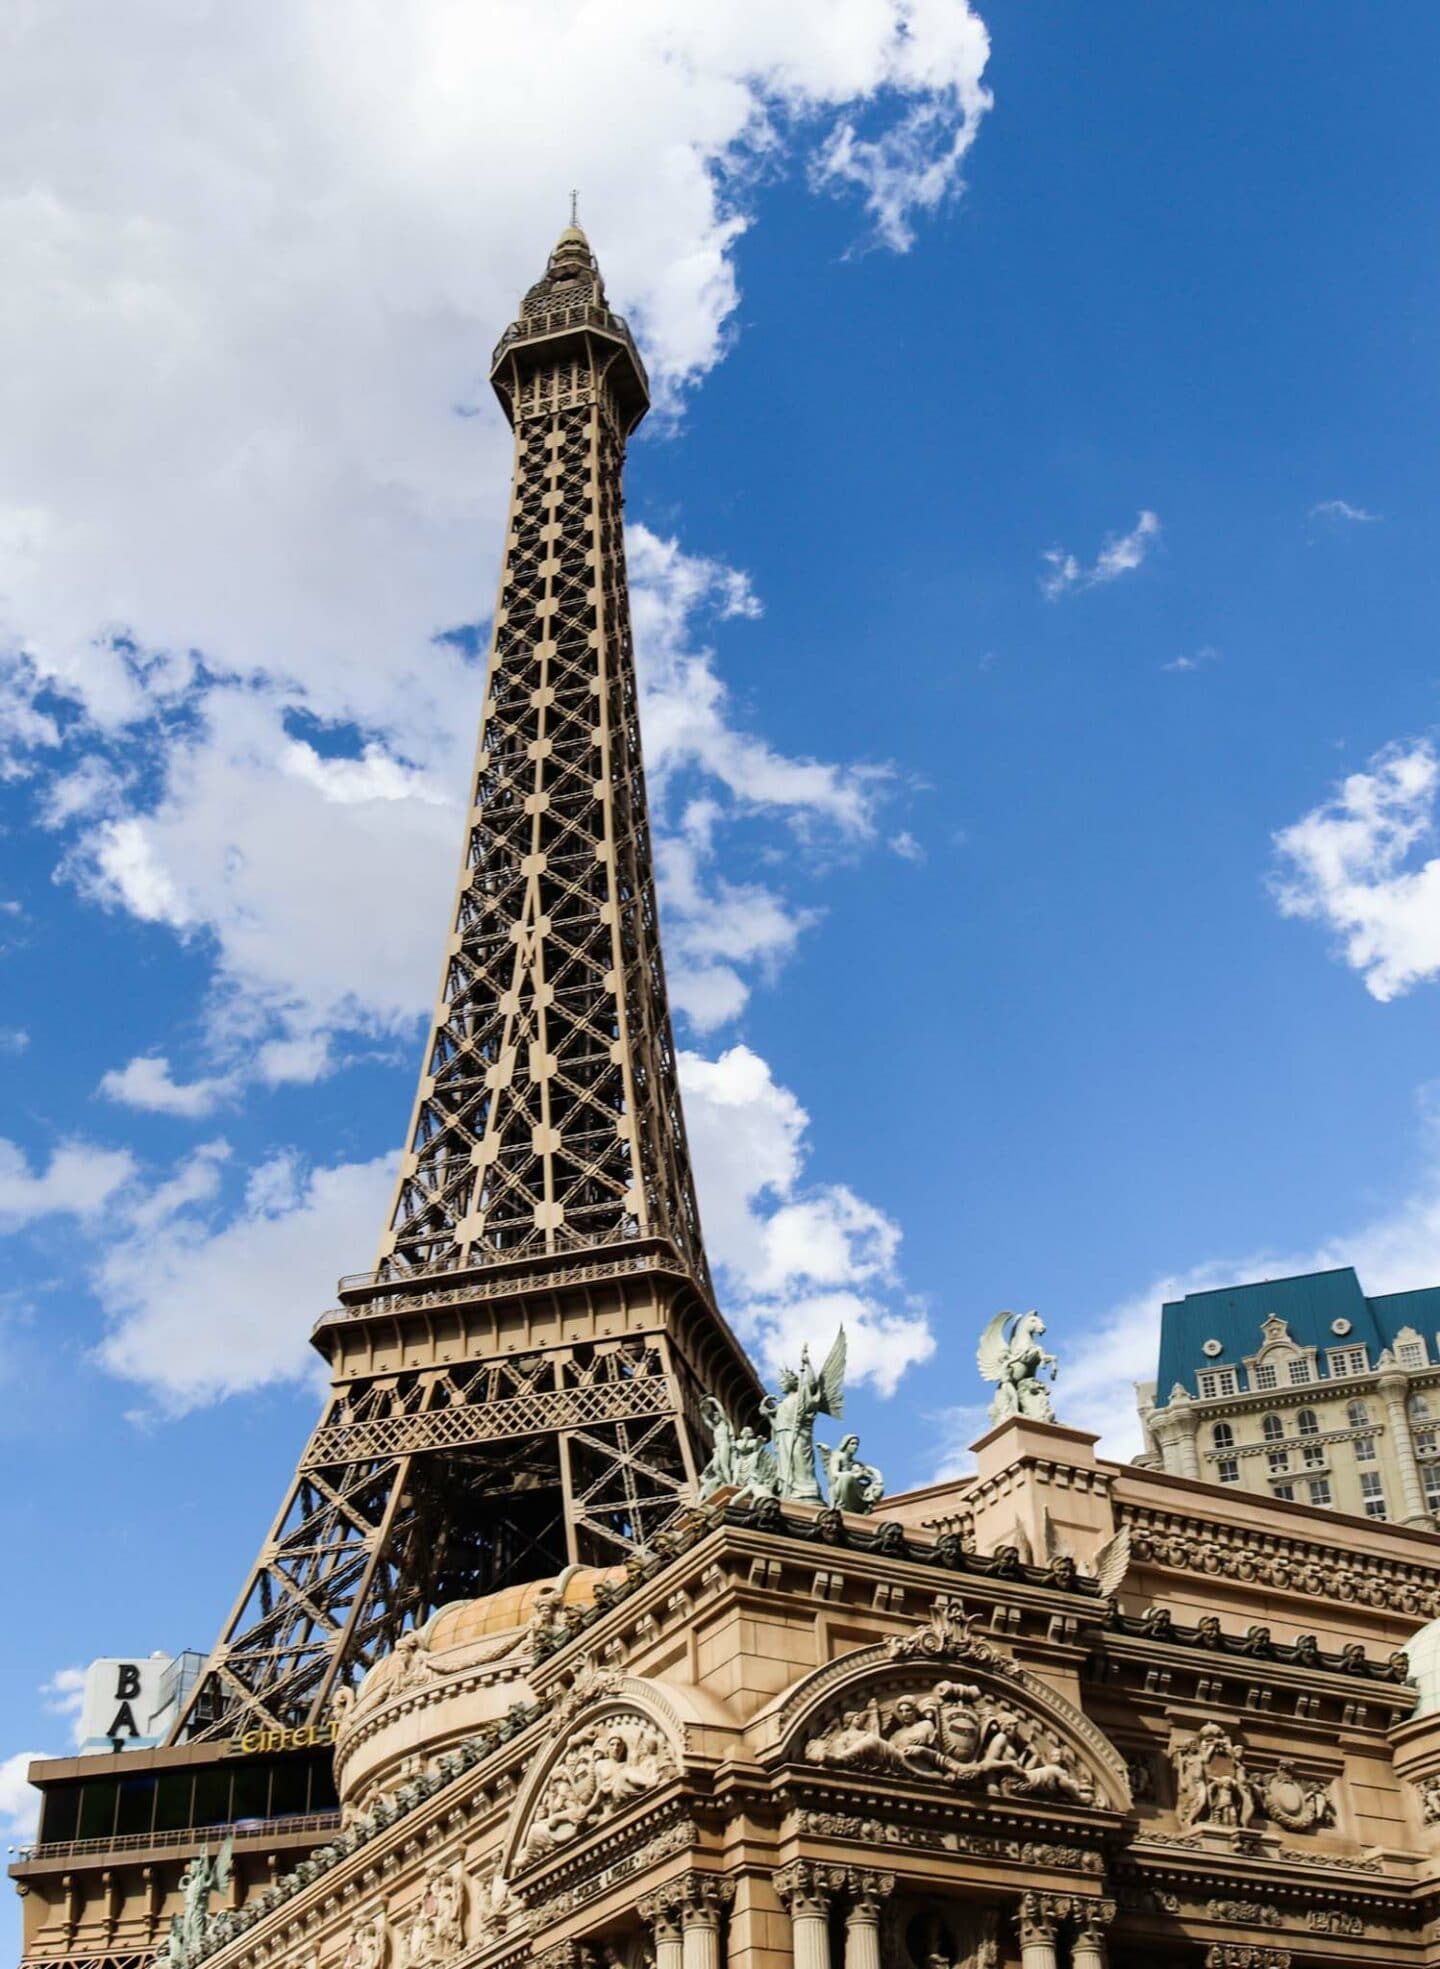 The replica of the Eiffel Tower outside the Paris Hotel.